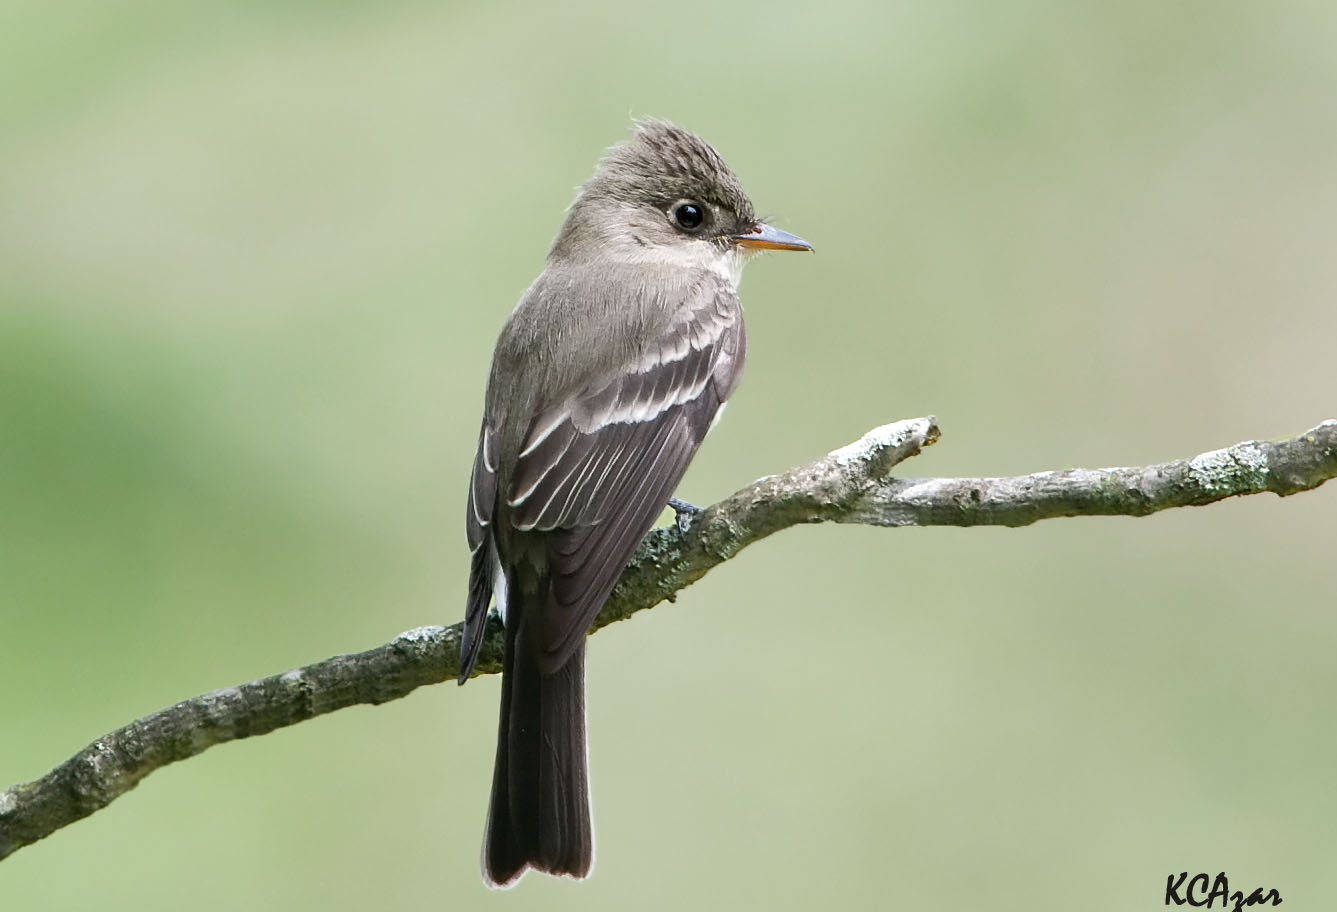 """- Eastern Wood Pewee (Contopus virens)The Eastern Wood Pewee lives in deciduous and coniferous forests and in any other wooded areas, such as parks and roadsides. They eat insects and other invertebrates. Their wingspan is 9.1-10.2 in. and they weigh 0.4-0.7 oz. Eastern Wood Pewees say their name in their """"pee-a-weee"""" song. The are protected on the US Migratory Bird list.Photo Credits: Kelly Colgan Azar"""